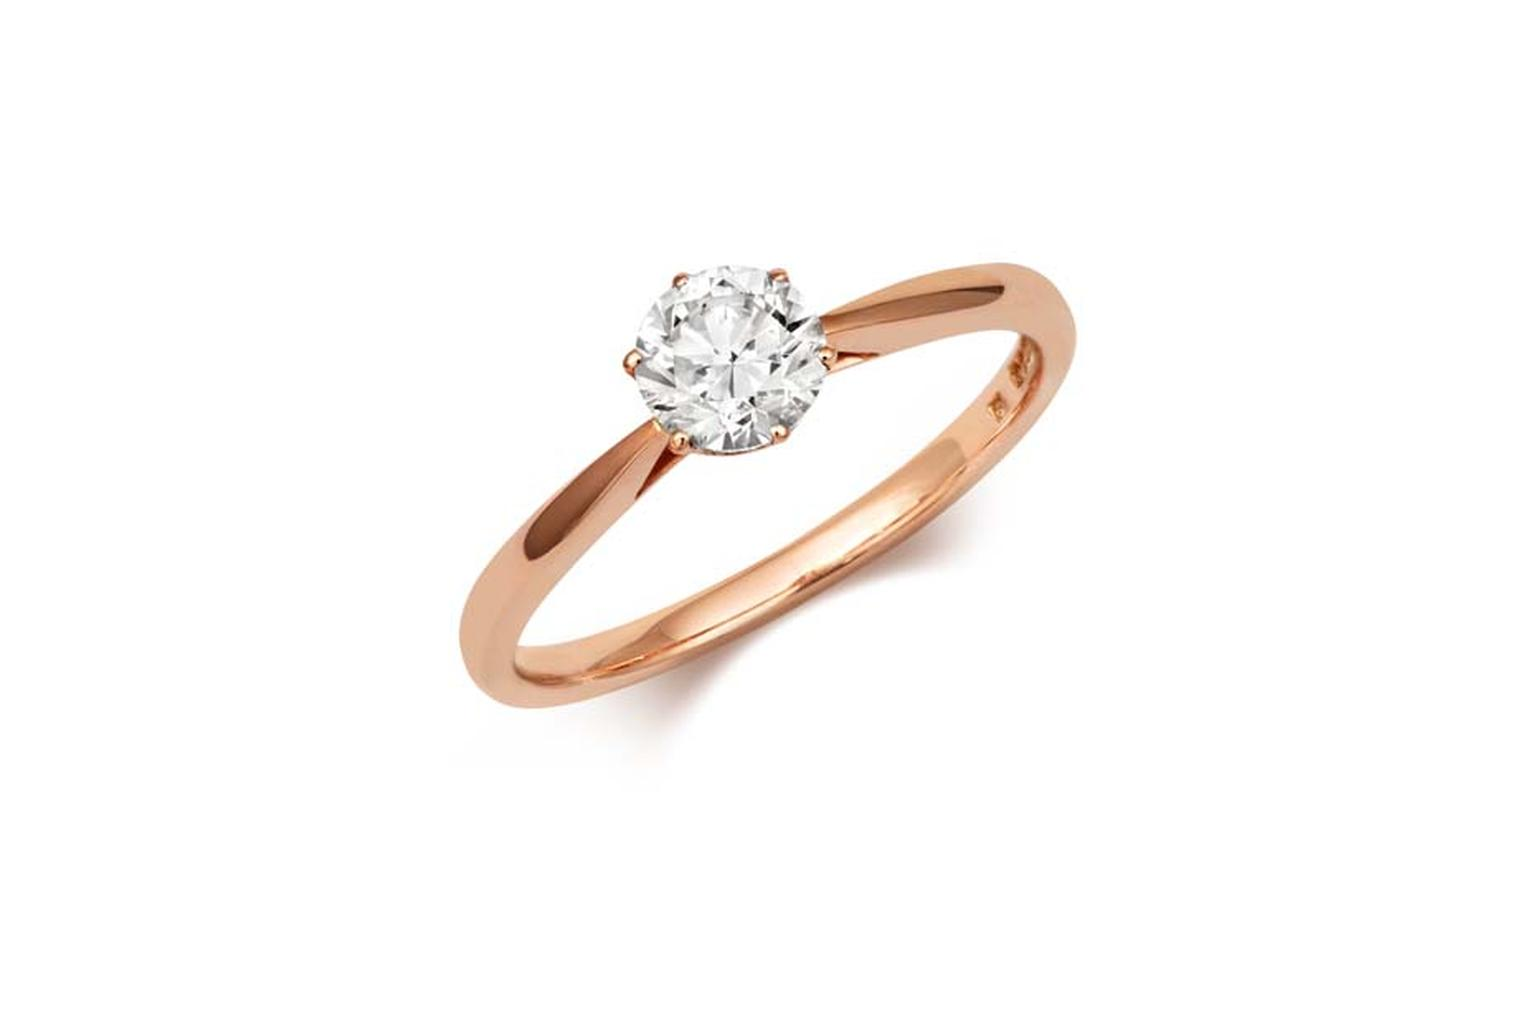 Cred Antique diamond engagement ring in rose gold (£2,240).